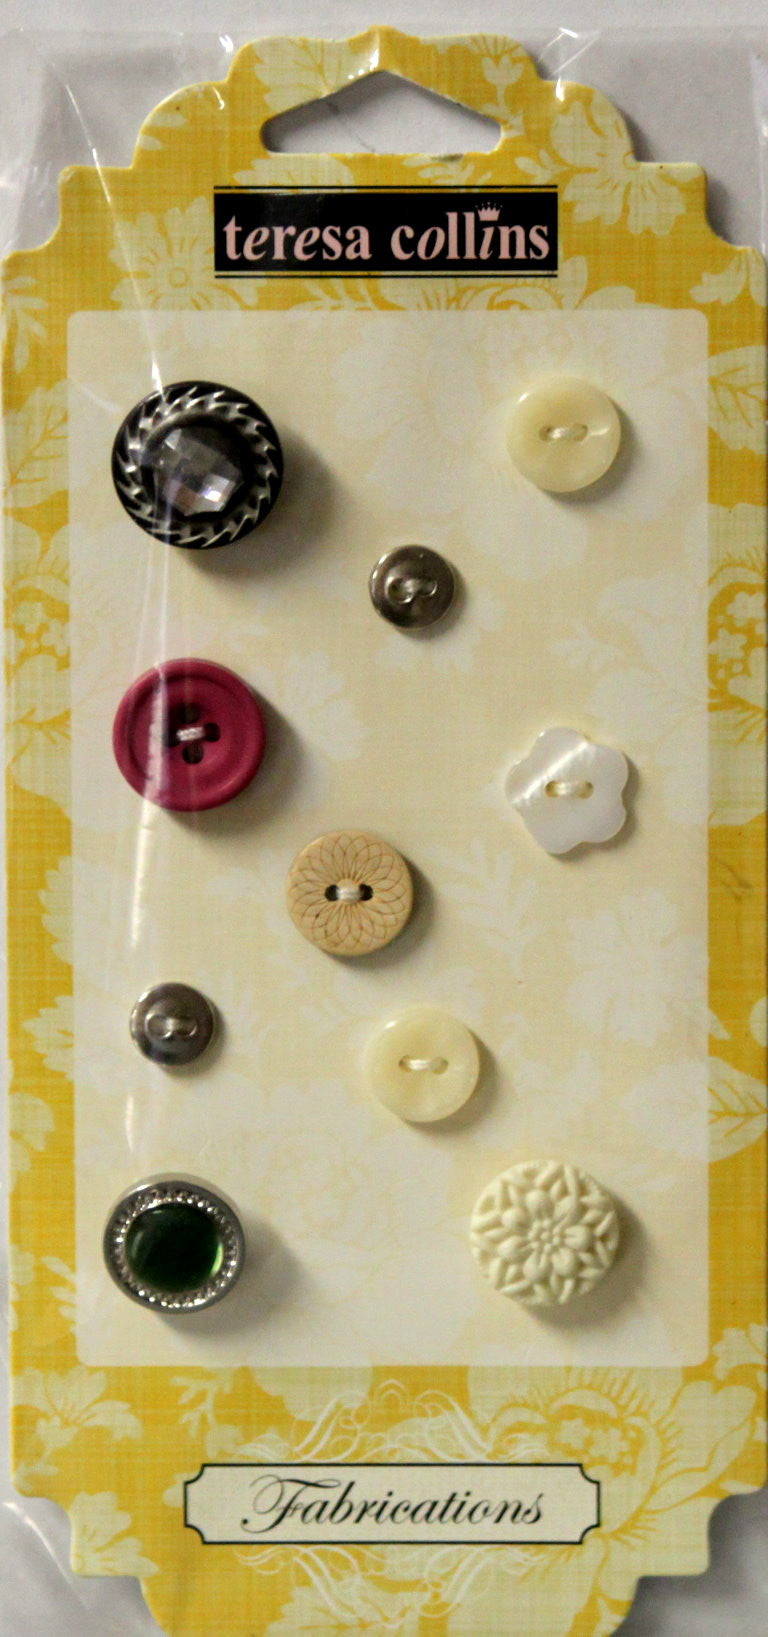 Teresa Collins Fabrications Canvas Buttons Embellishments